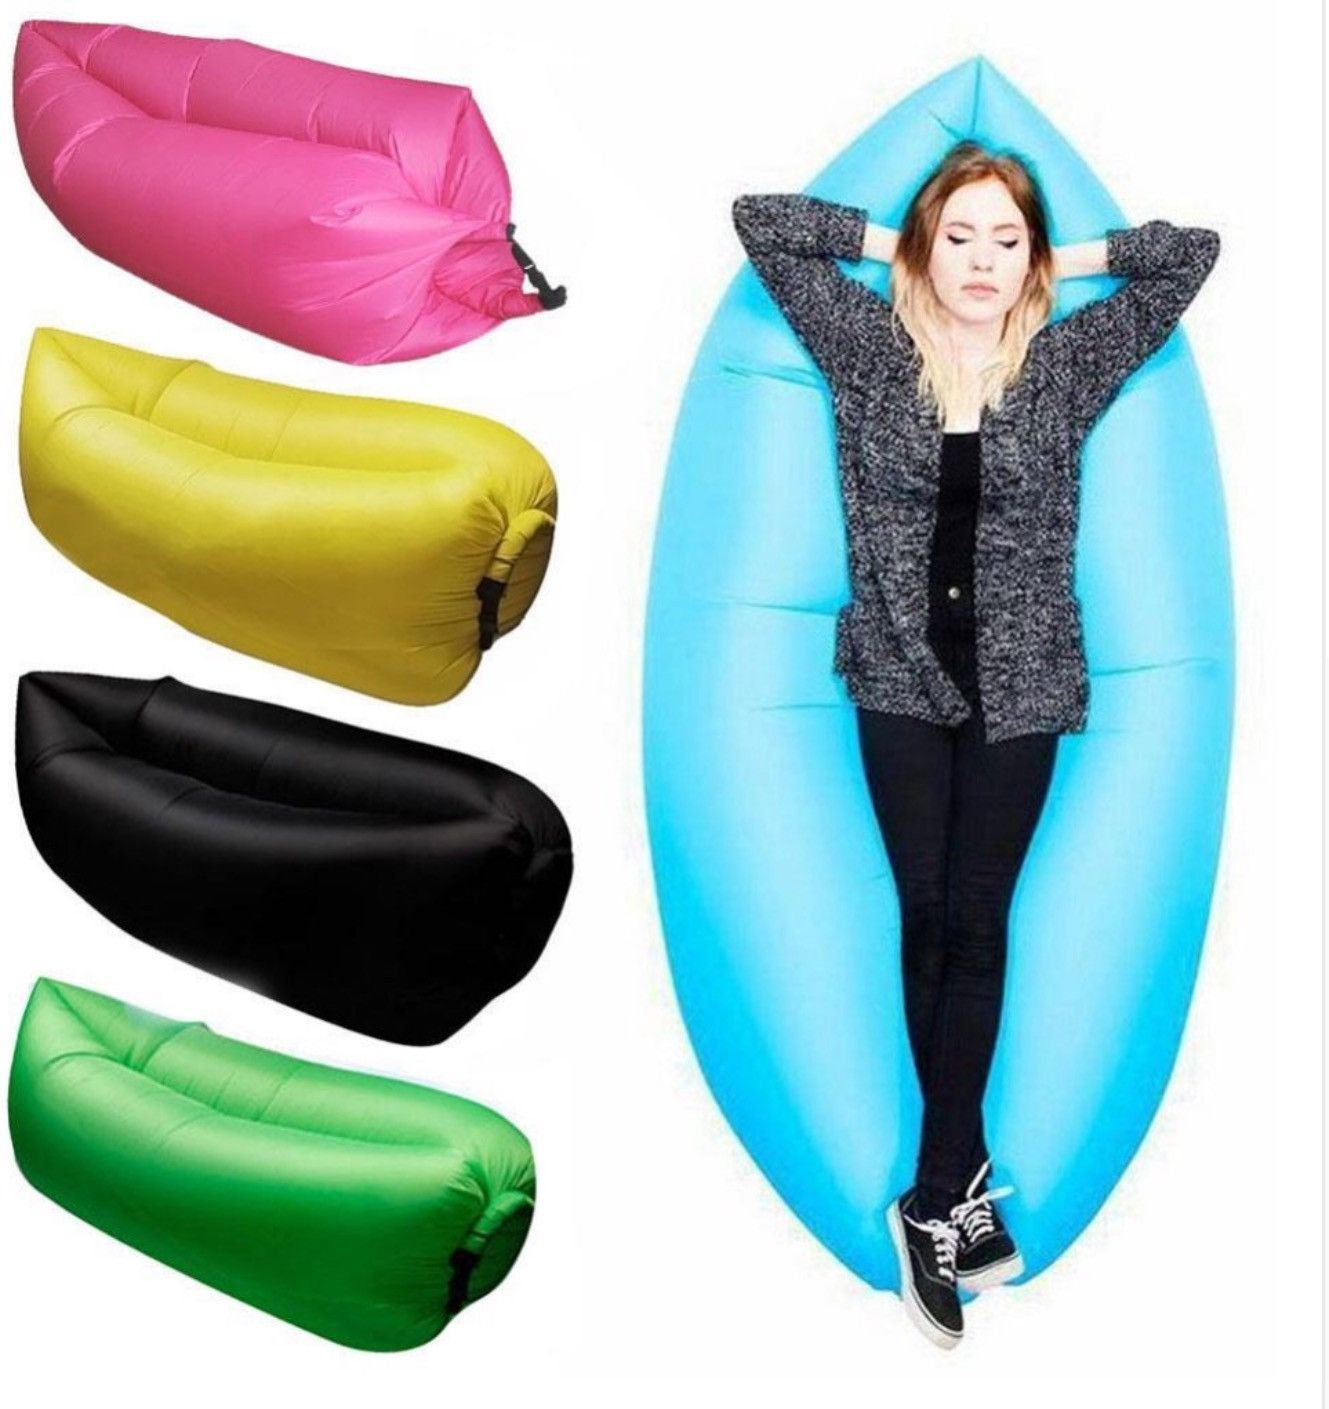 Sectional Sleeper Sofa Finally Lightweight Air Sofa Sleep Bed Inflation Lounger Inflatable Outdoor